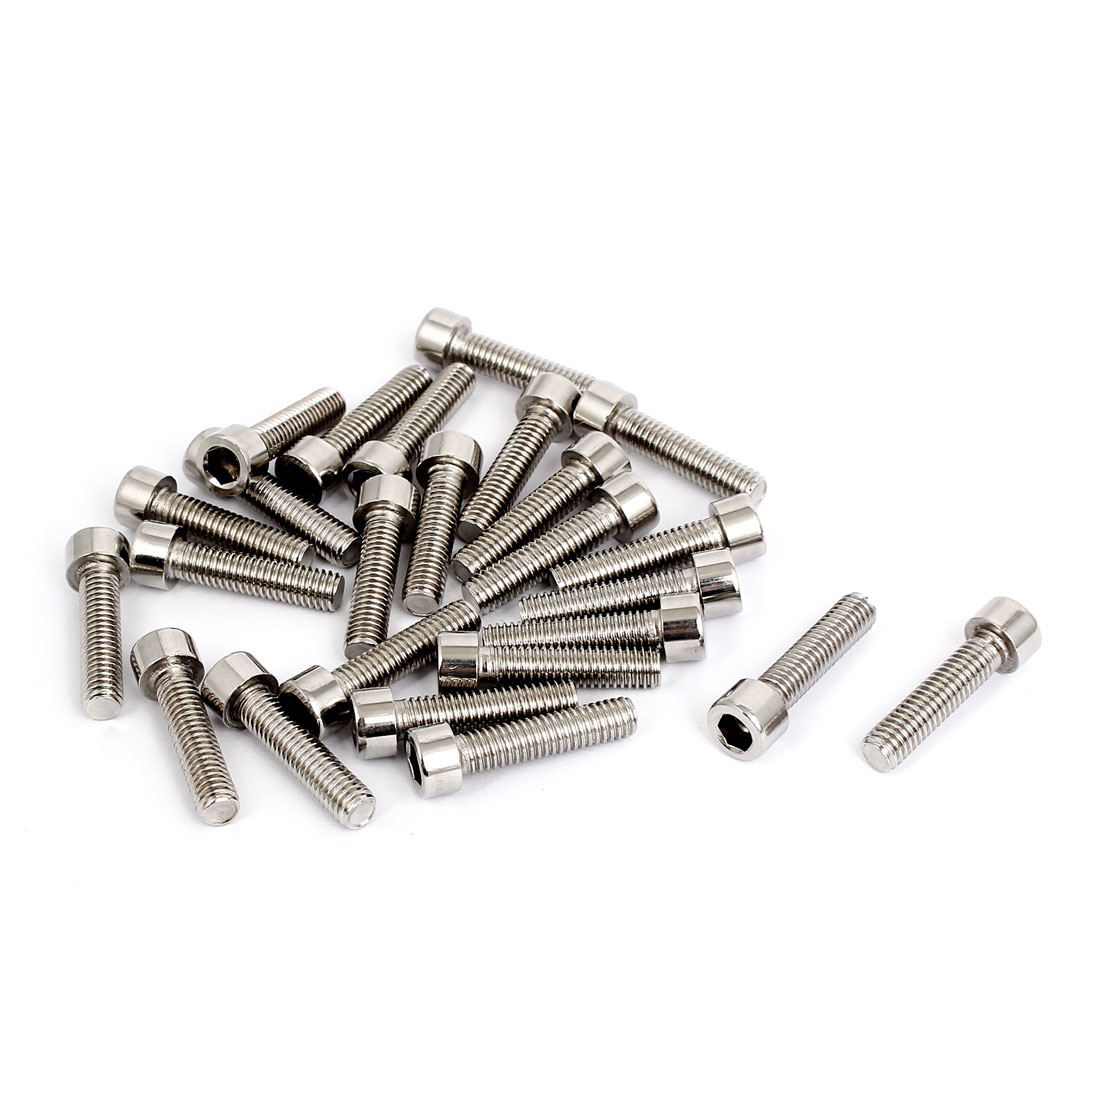 25pcs 5mm Stainless Steel Hex Key Socket Head Cap Screws Bolts M6x1mmx25mm